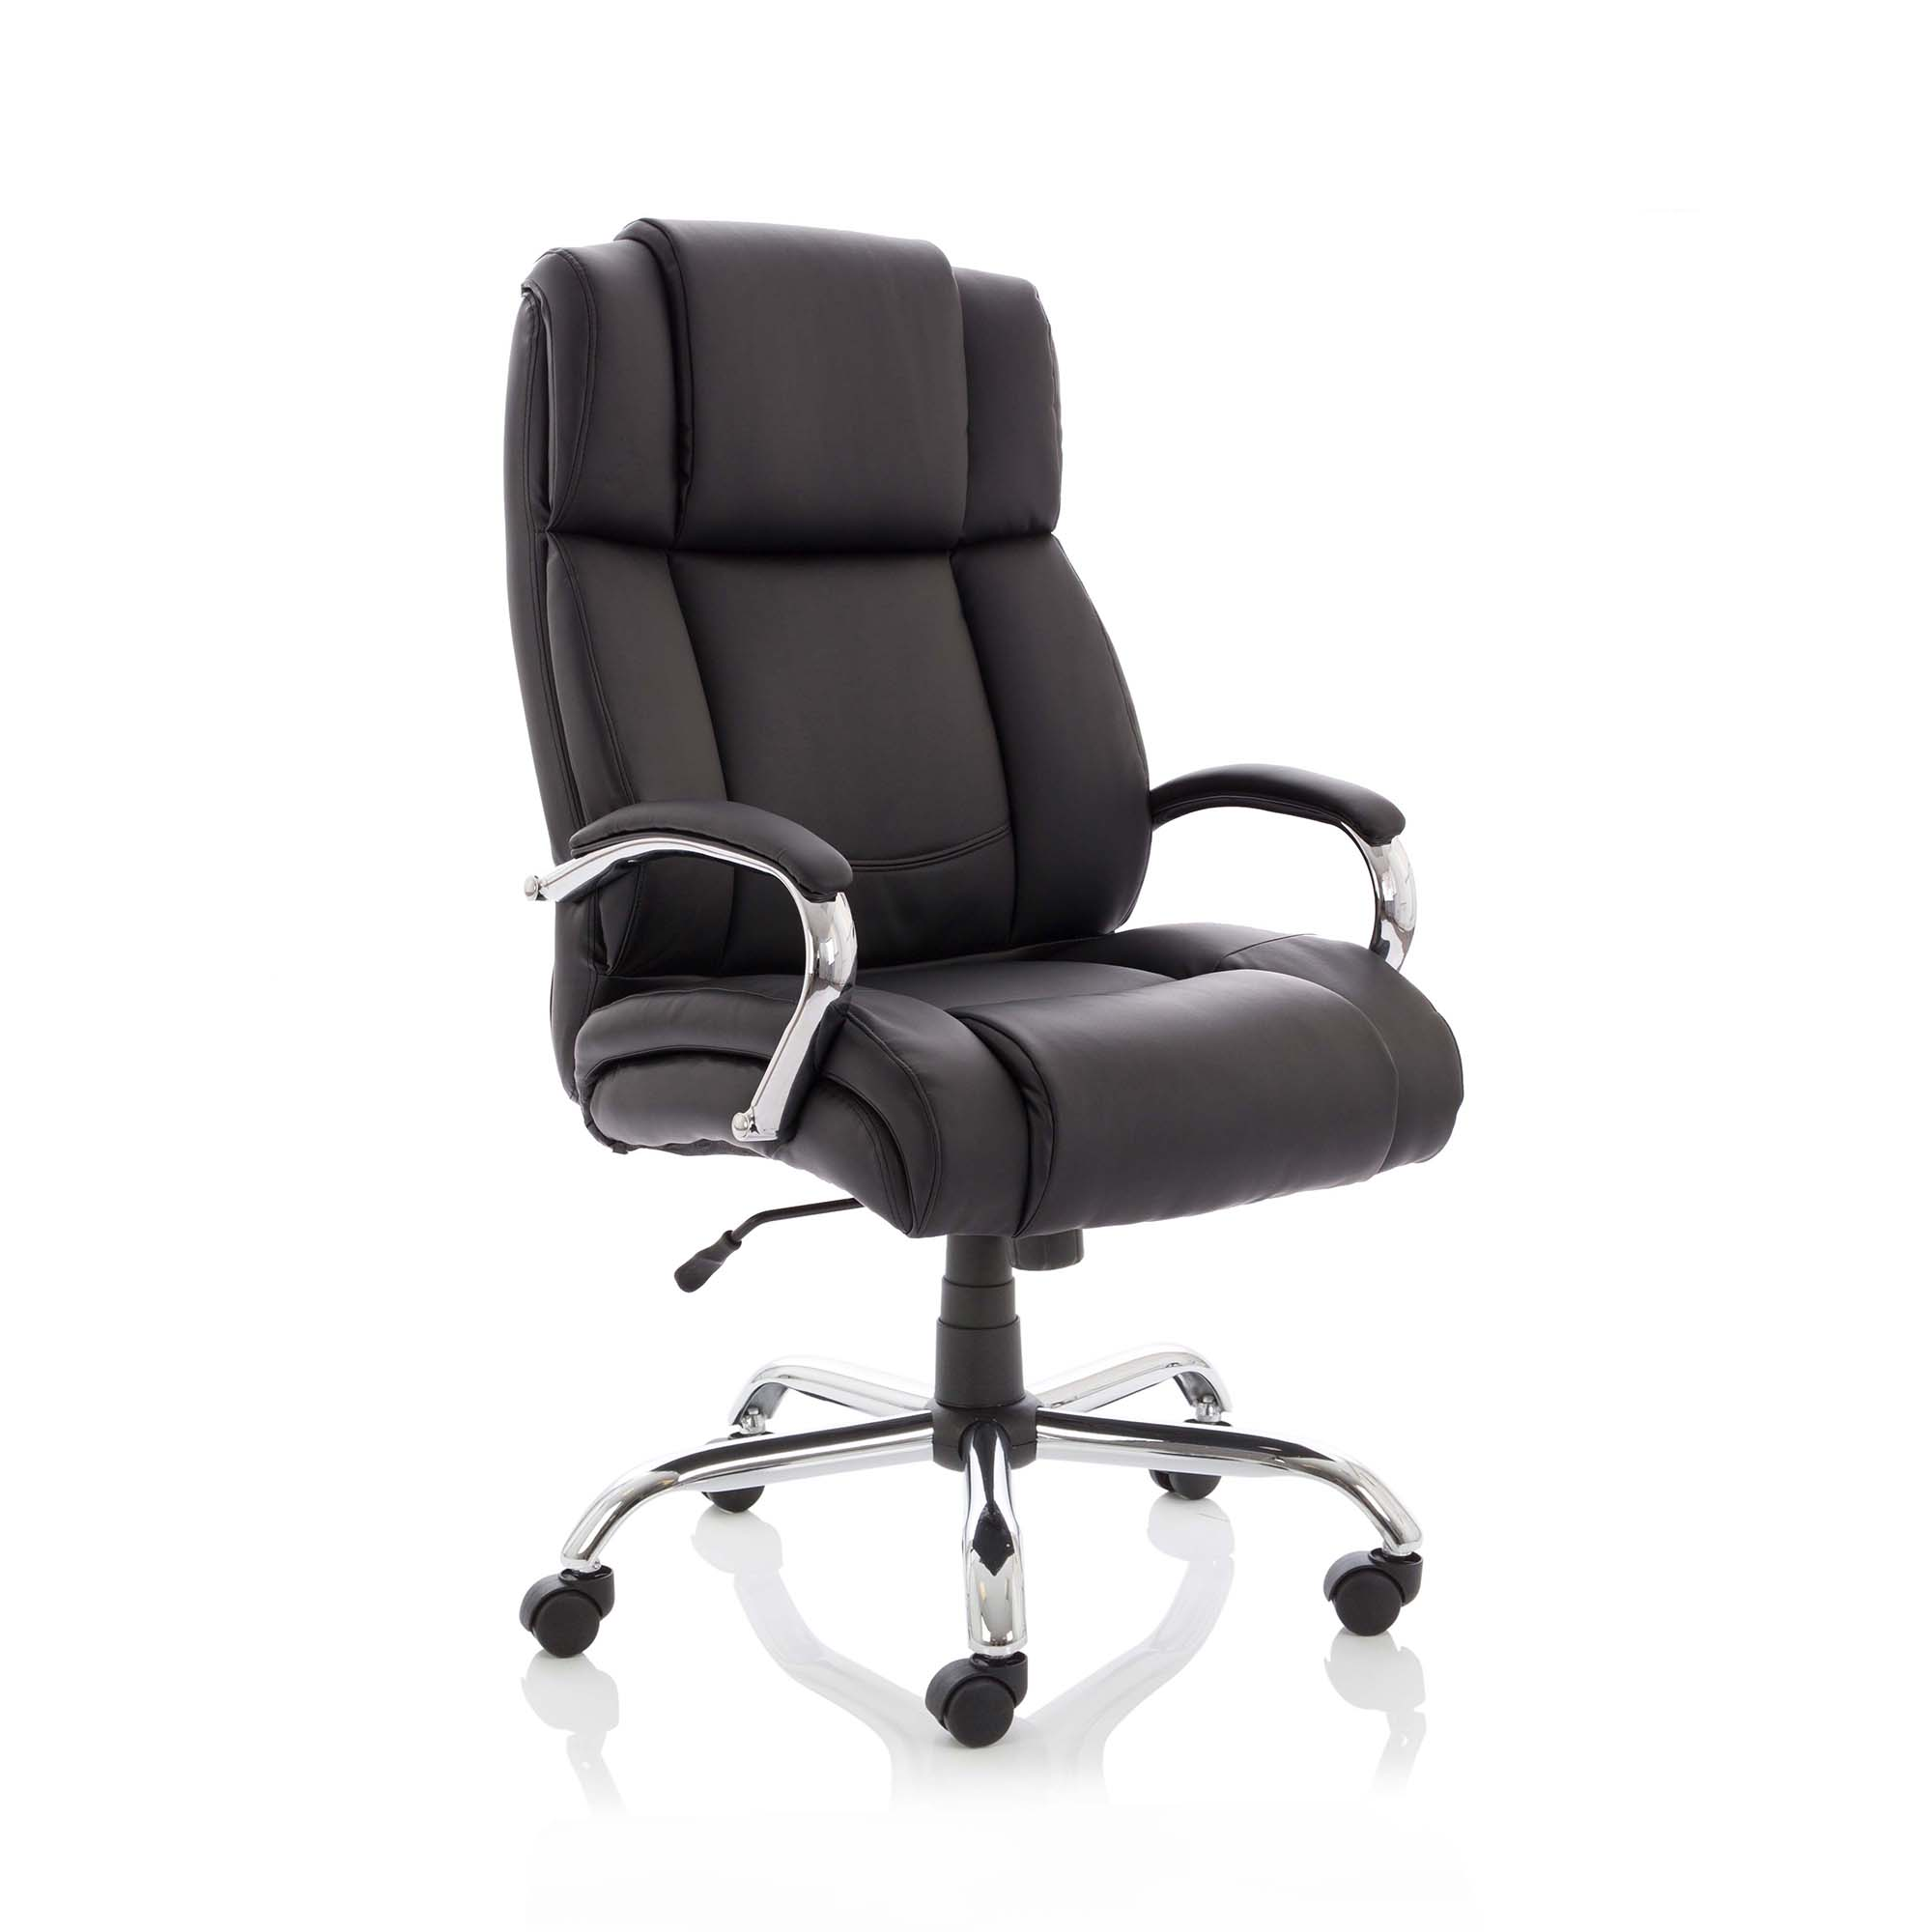 Executive seating Sonix Texas Executive Heavy Duty Chair With Arms Bonded Leather Ref EX000115